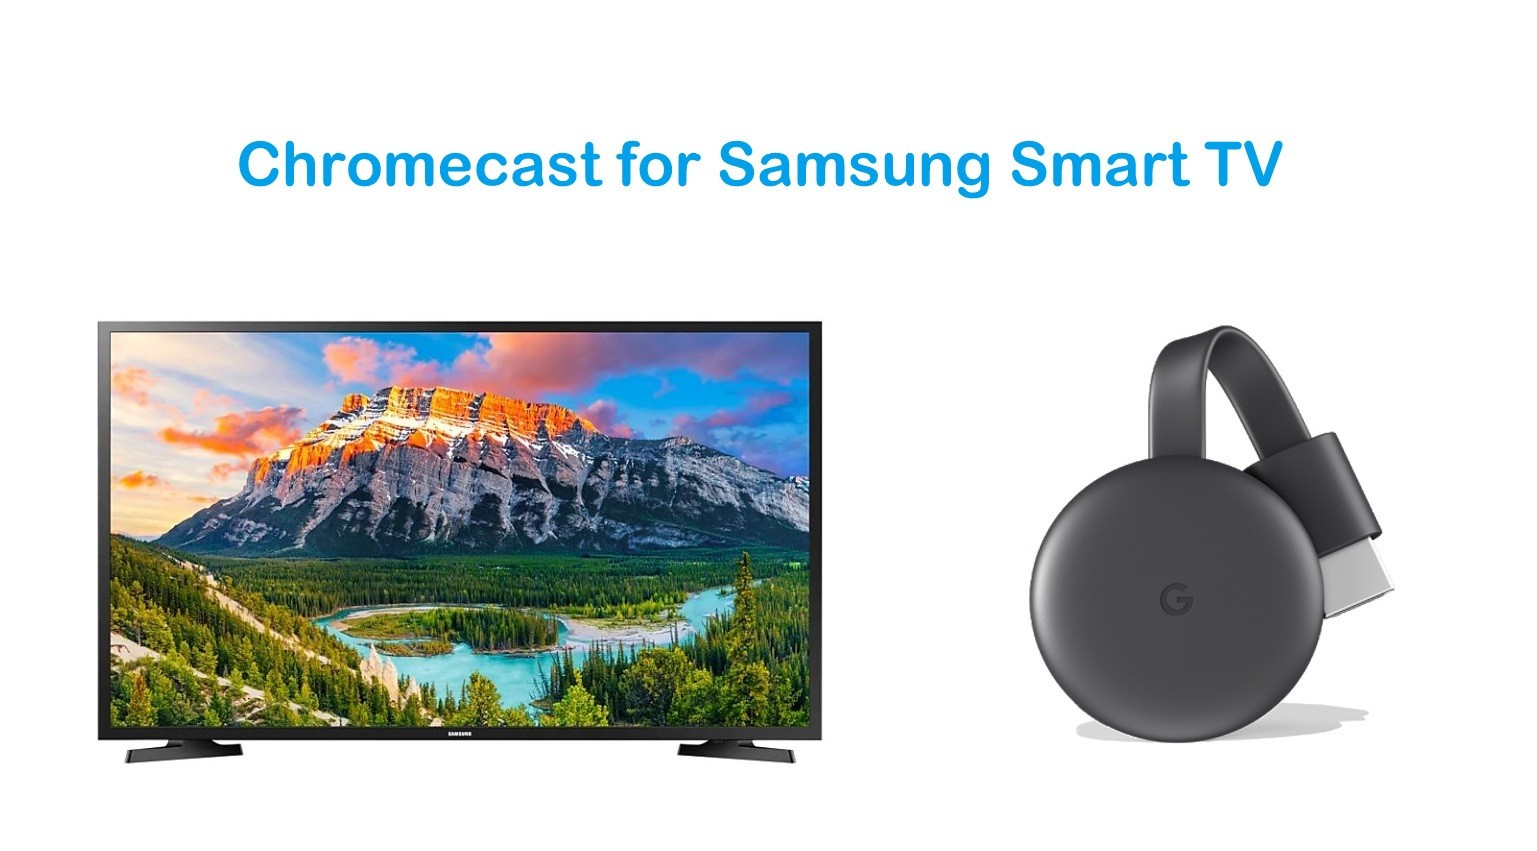 Chromecast for Samsung Smart TV